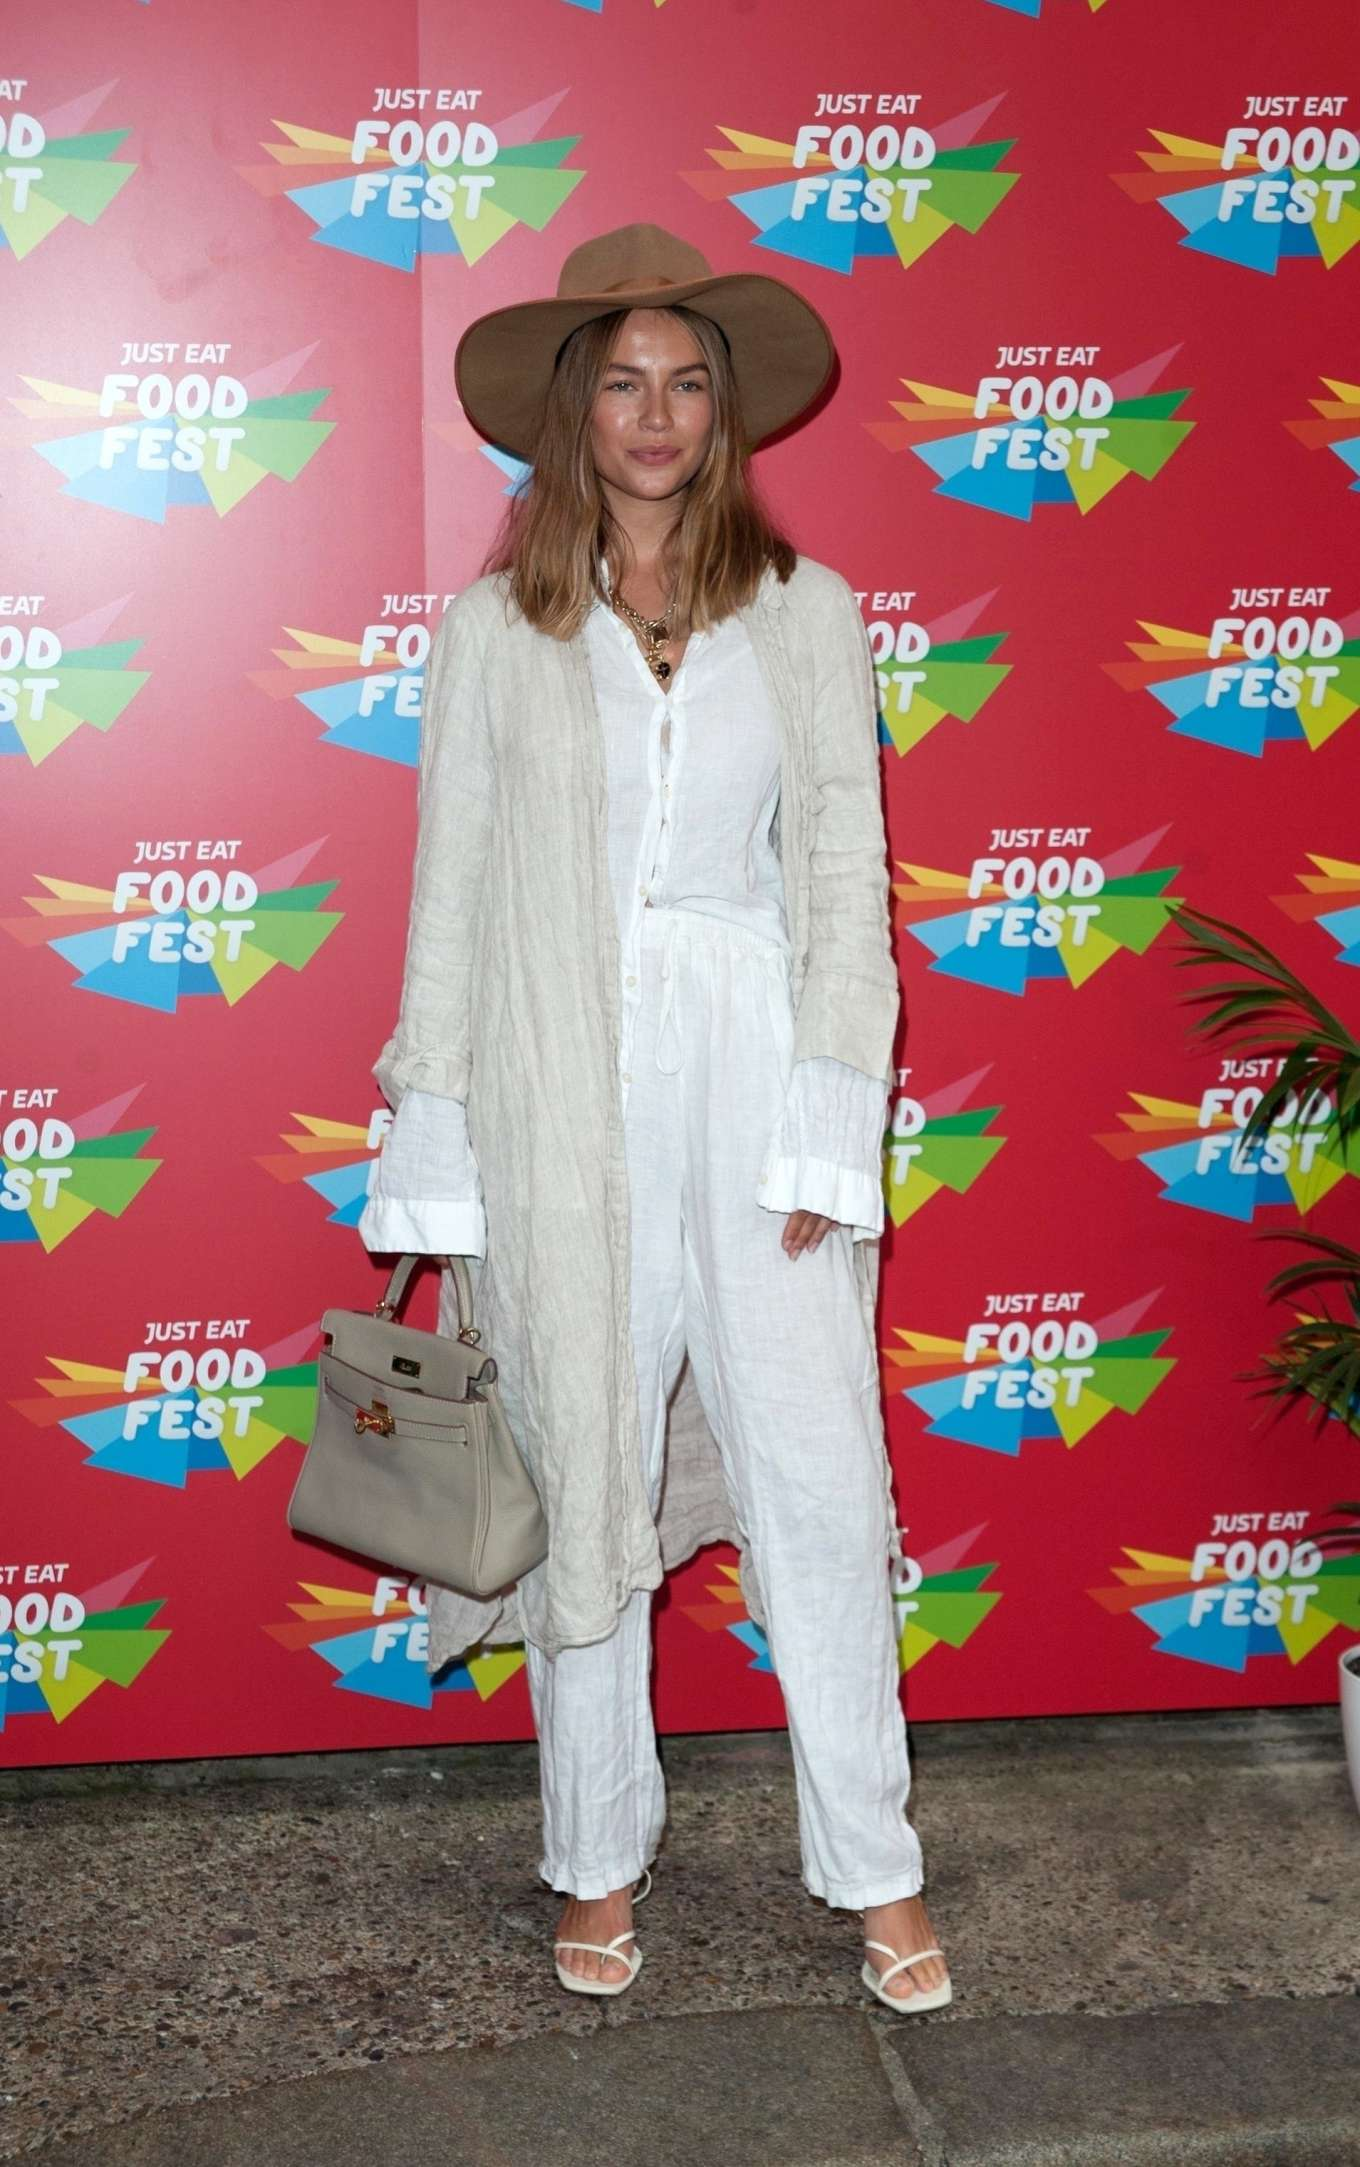 Emma Louise Connolly - VIP launch of Just Eat Food Fest Taste Adventure in London